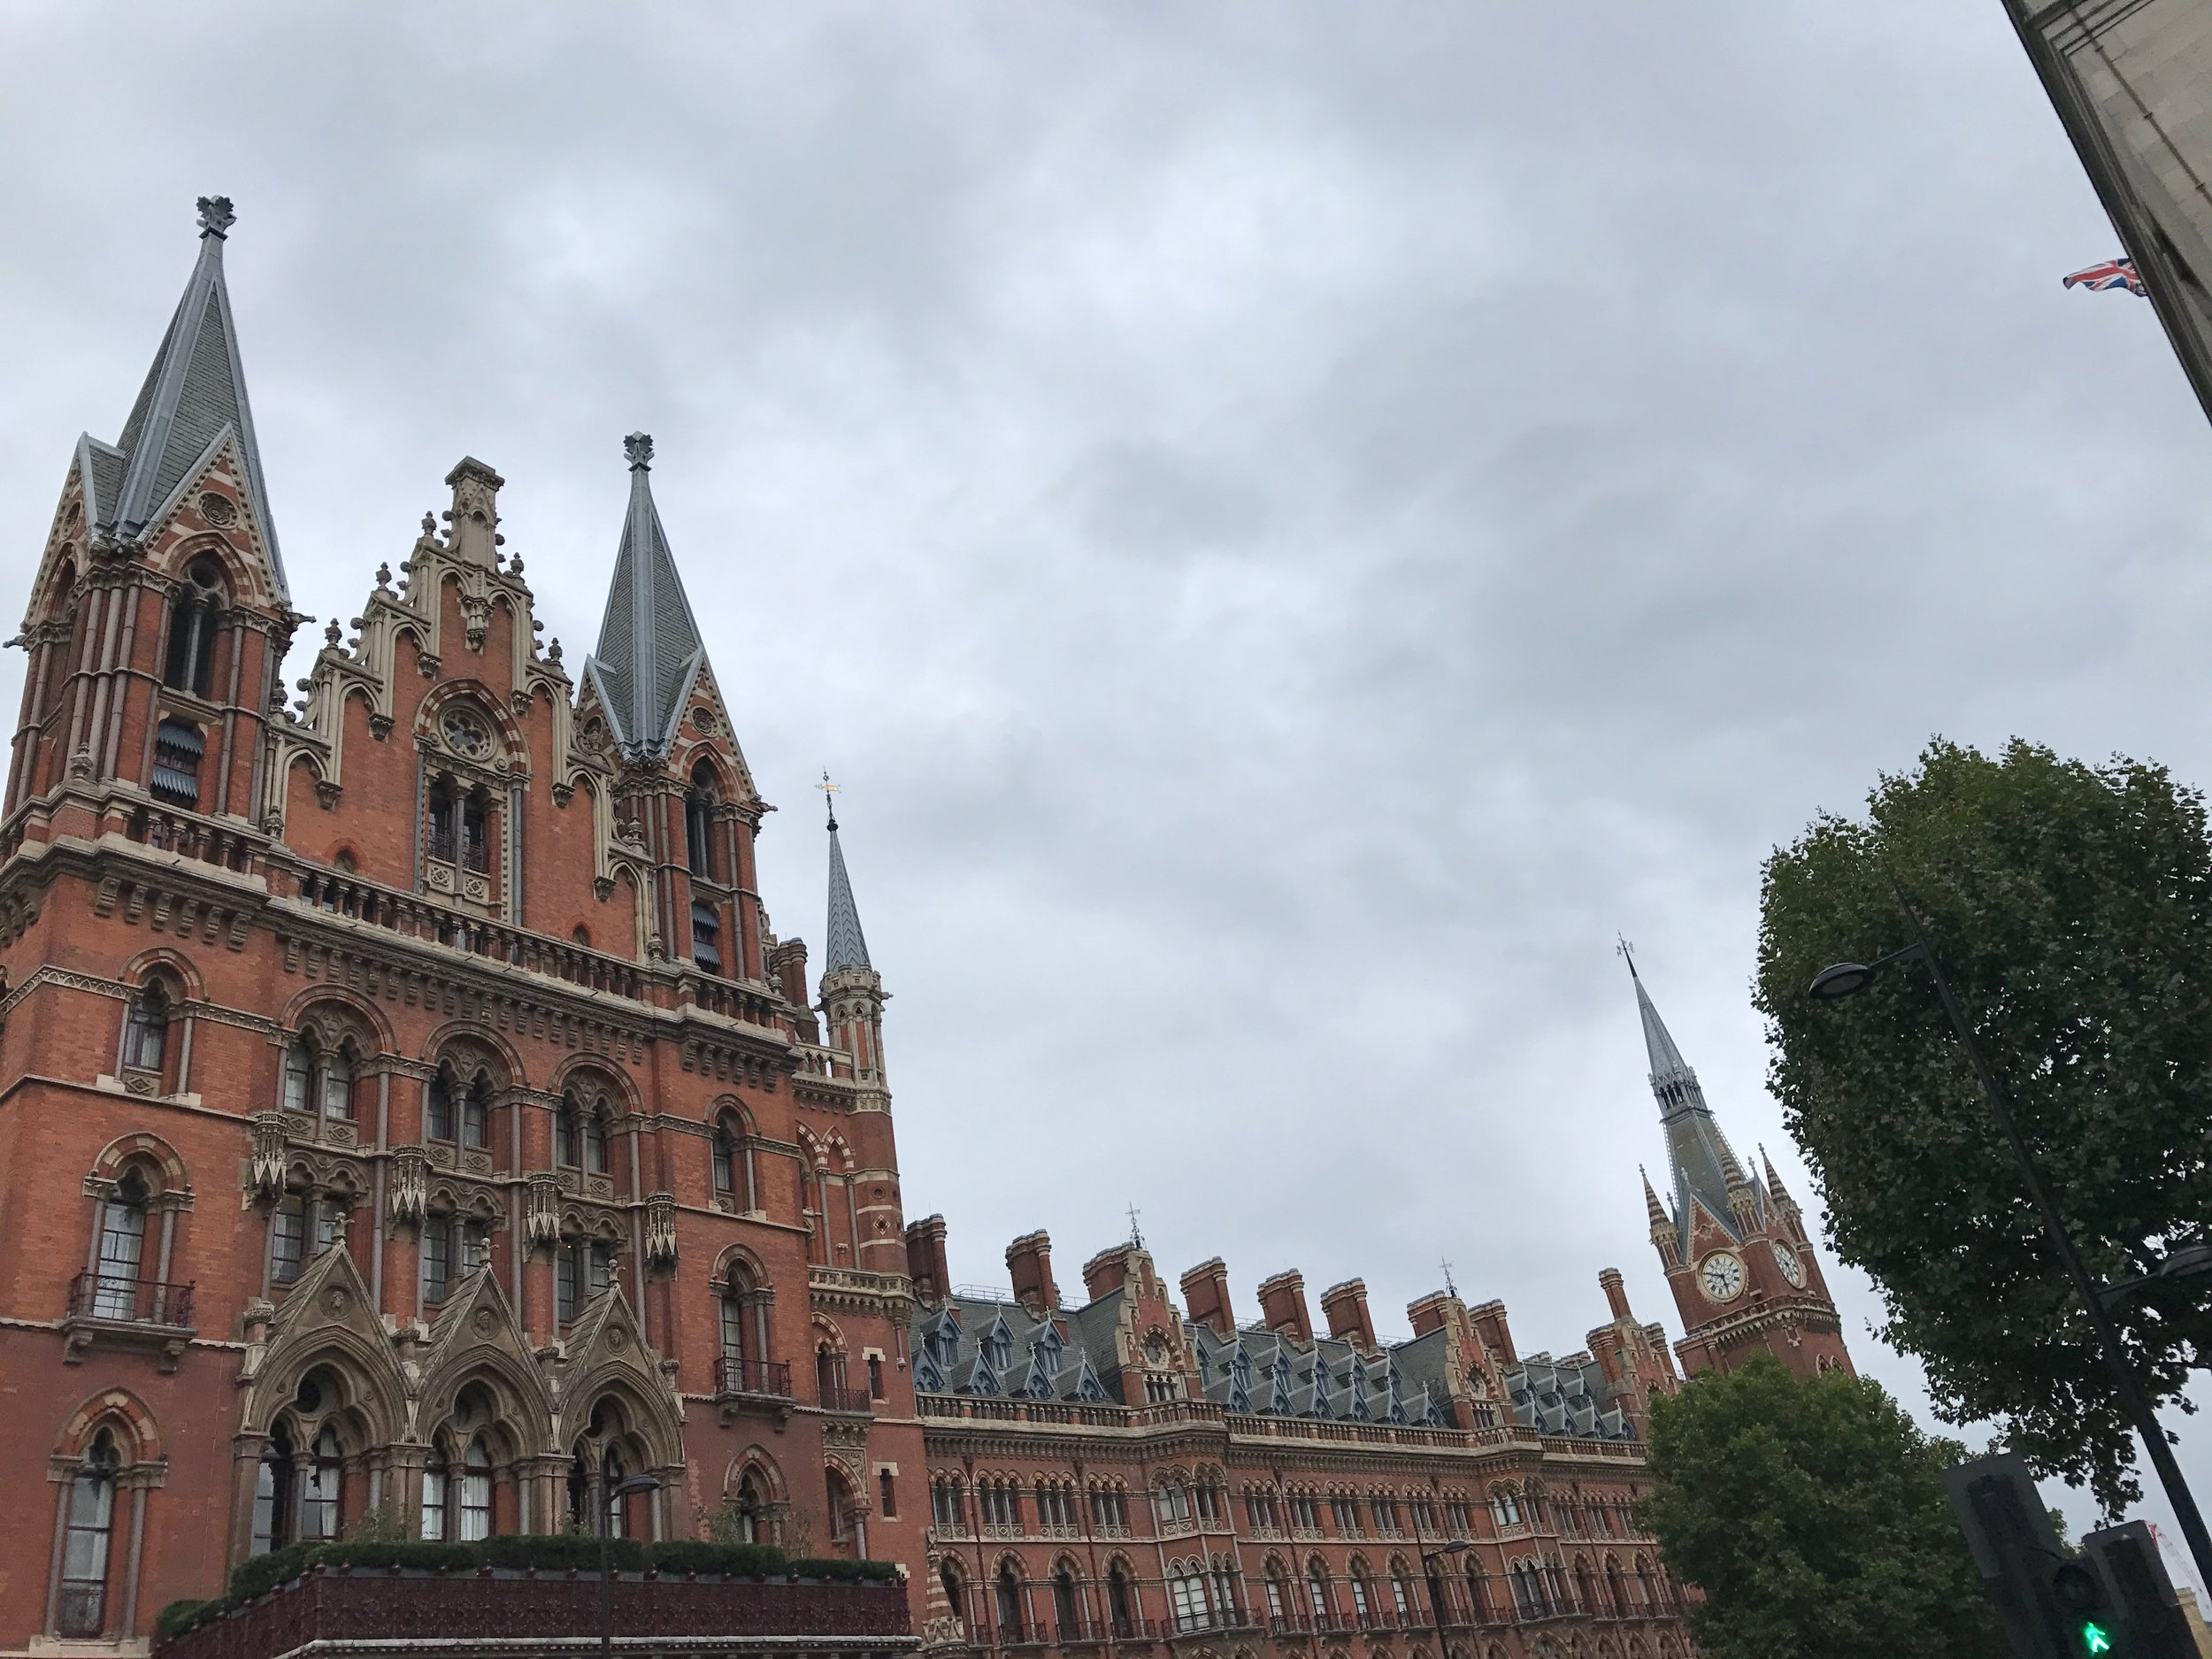 St. Pancras, a station by King's Cross I passed on my walk home.